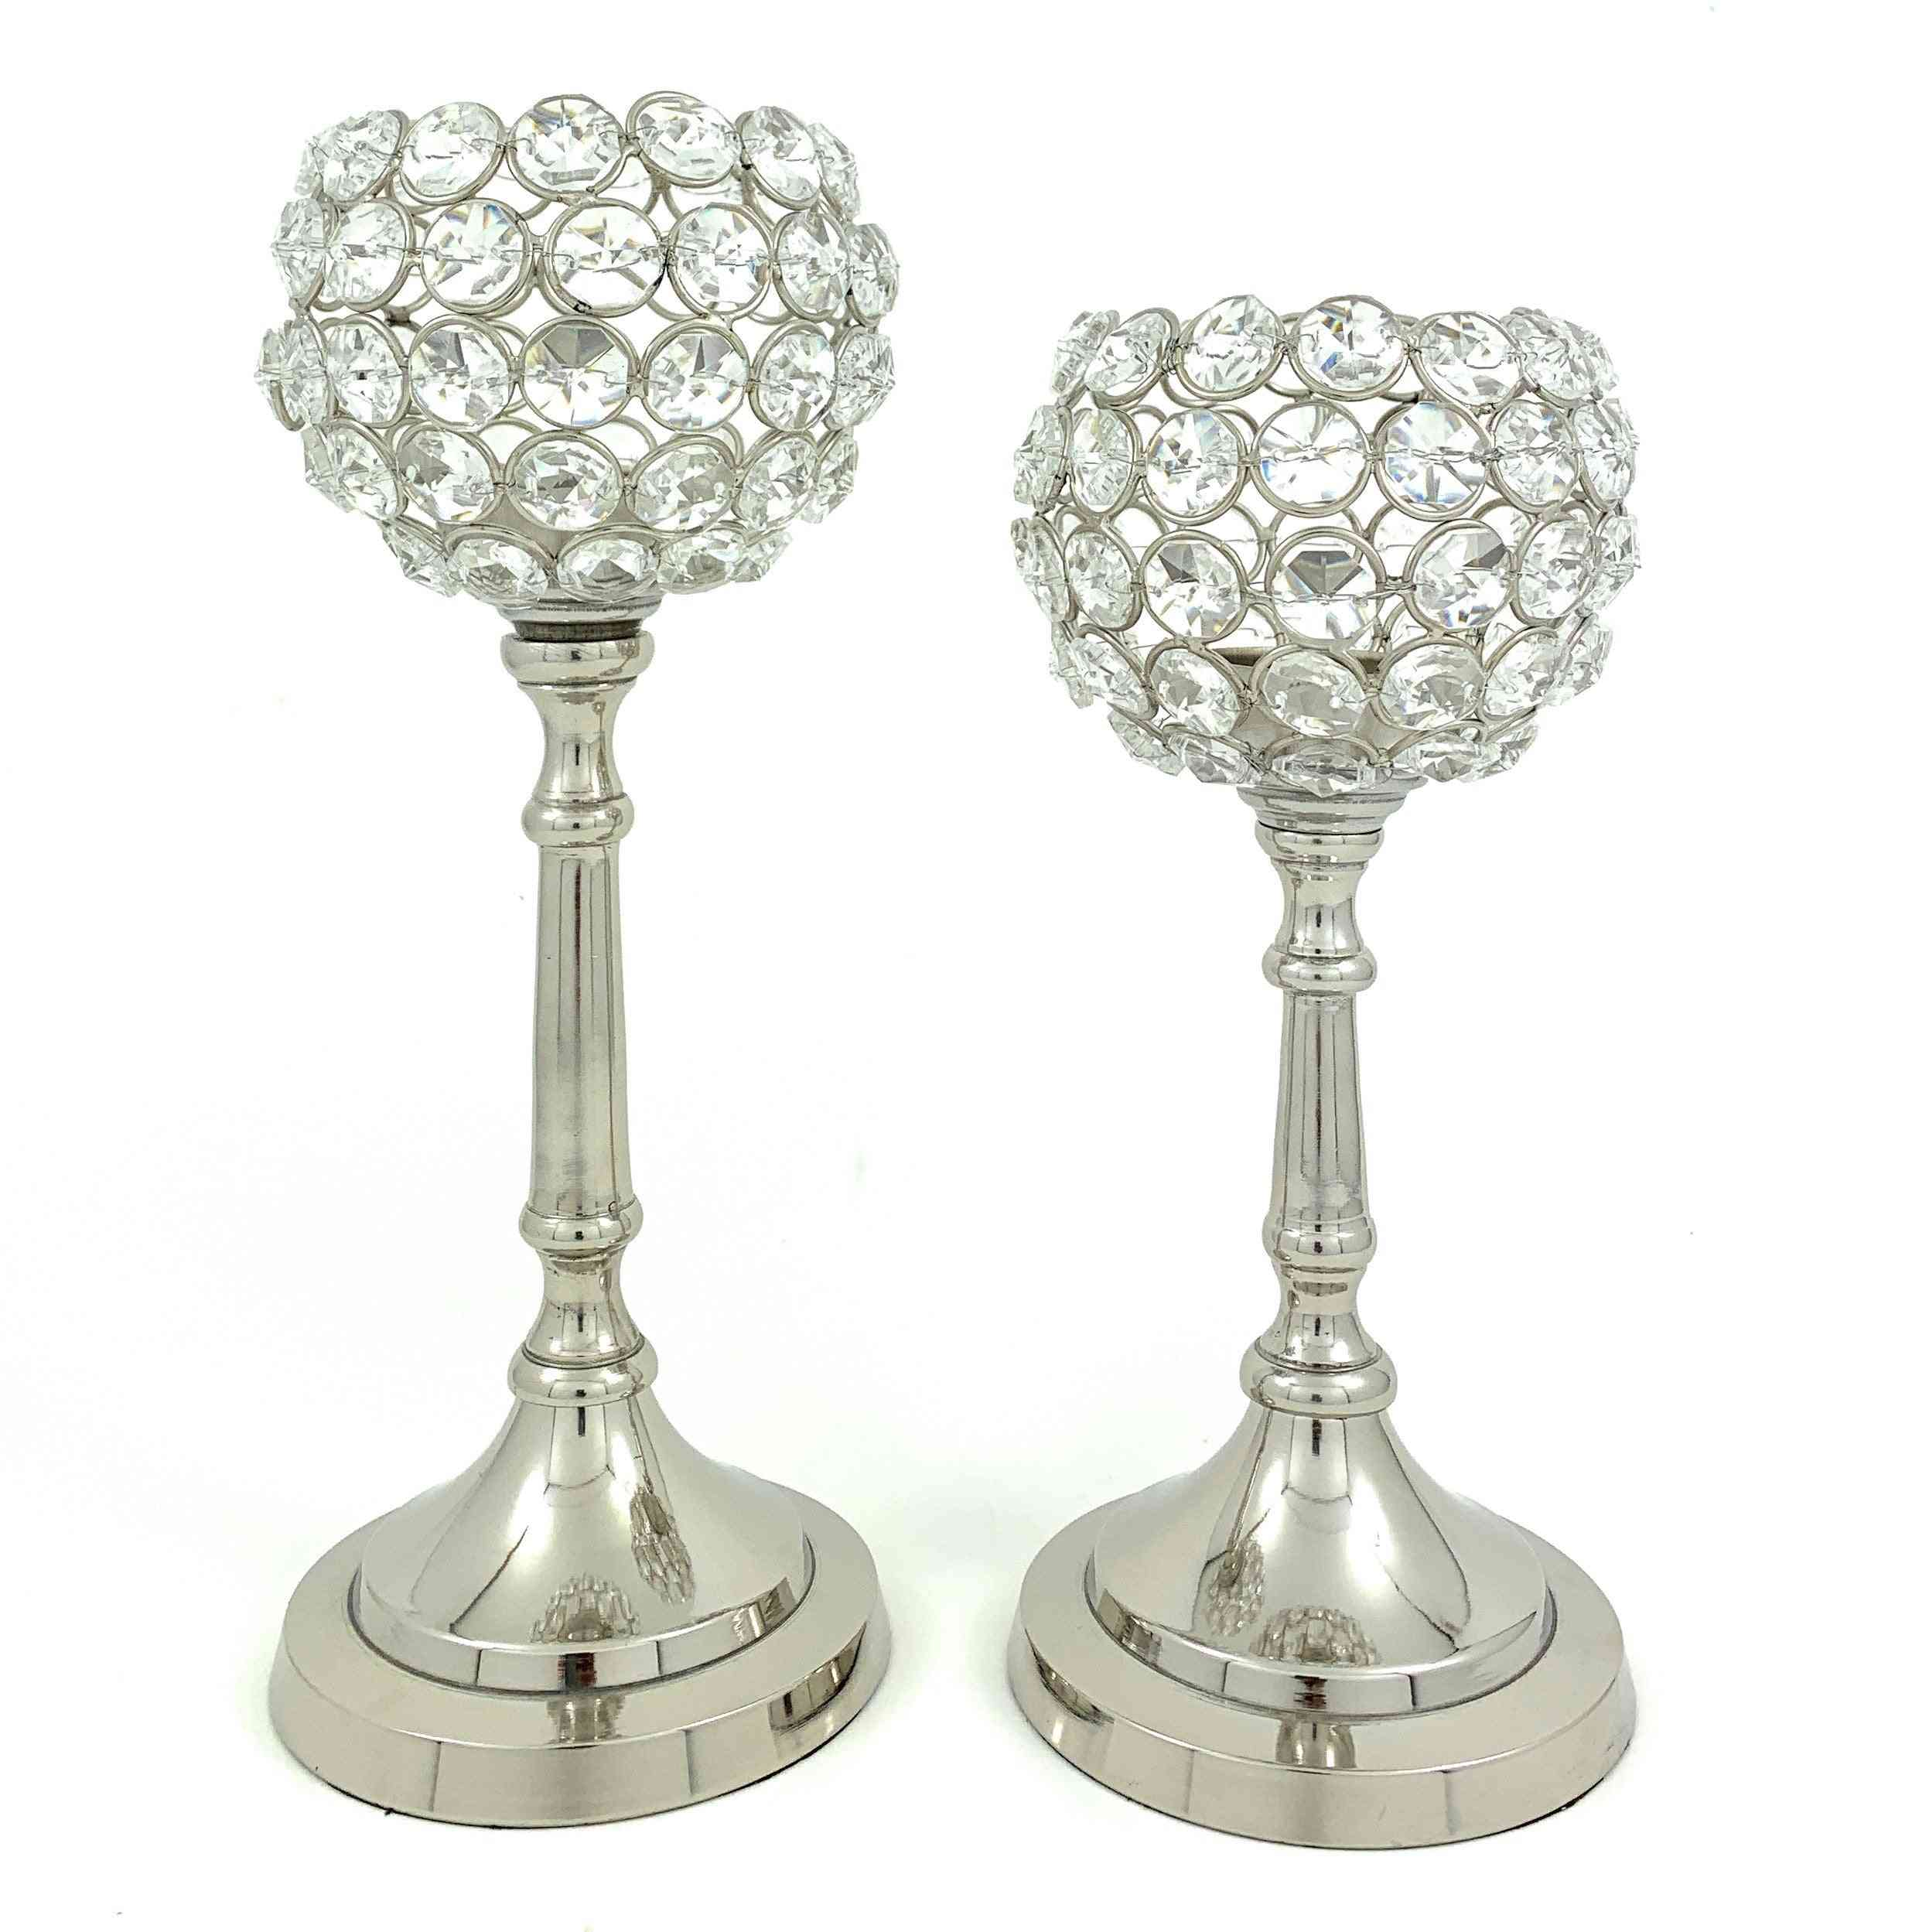 Crystal Candle Holder For Table Decor